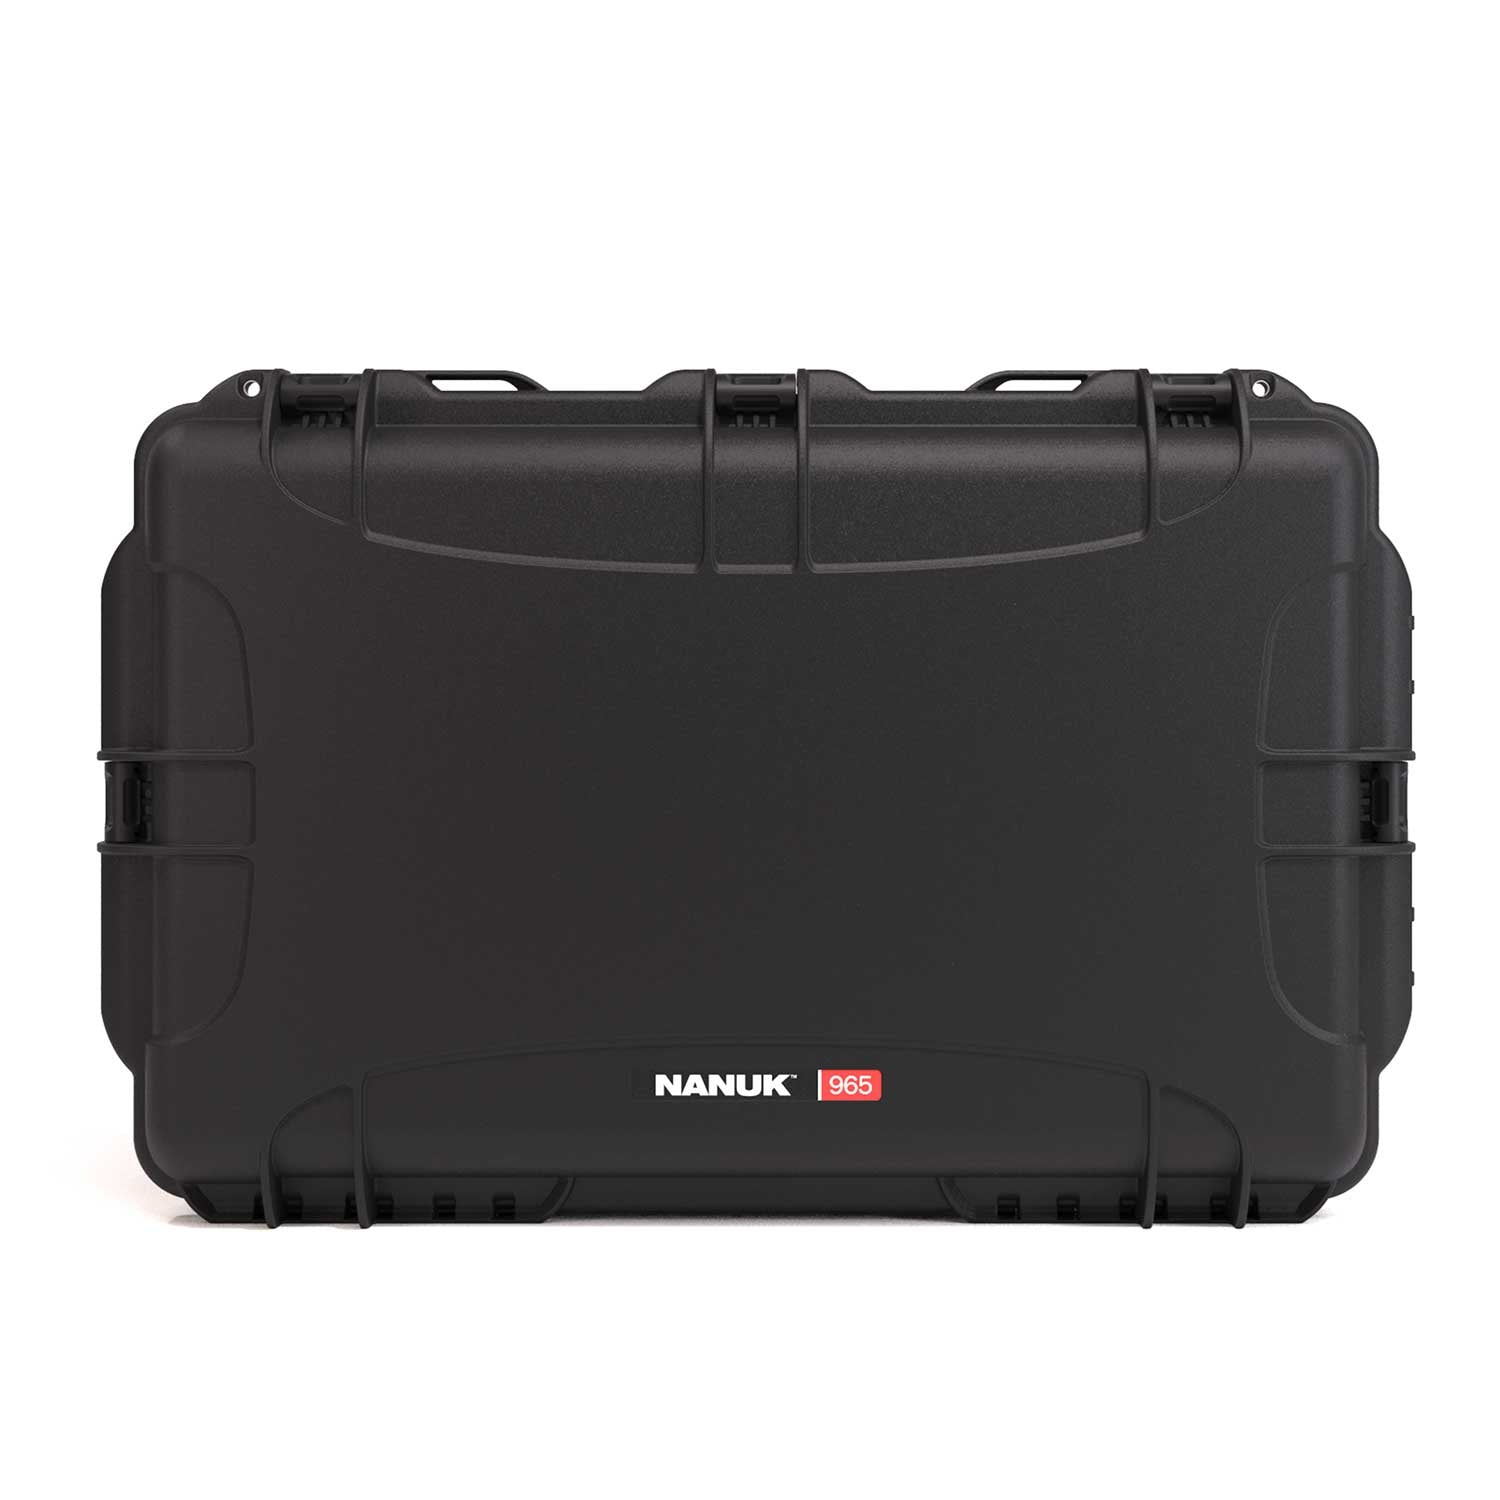 NANUK 965 Hard Case Specification Front